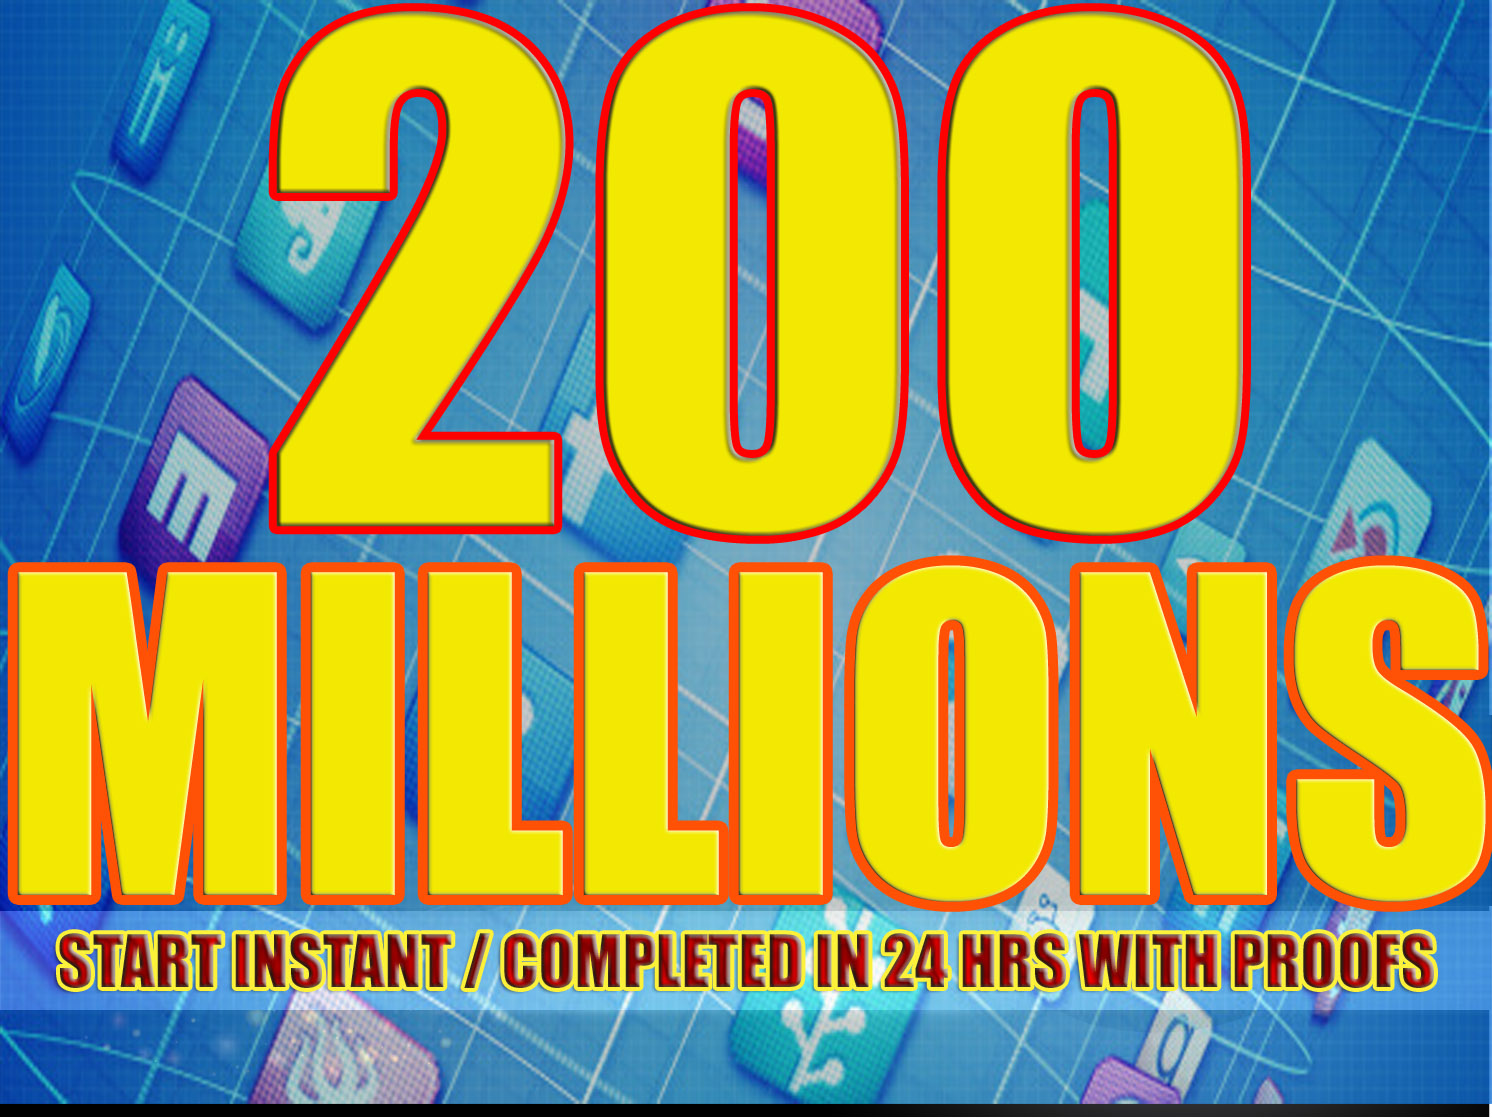 Promote to 200,998,608 (200 MILLIONS) Real People on Facebook For your Business/Website/Product or Any Thing You Want